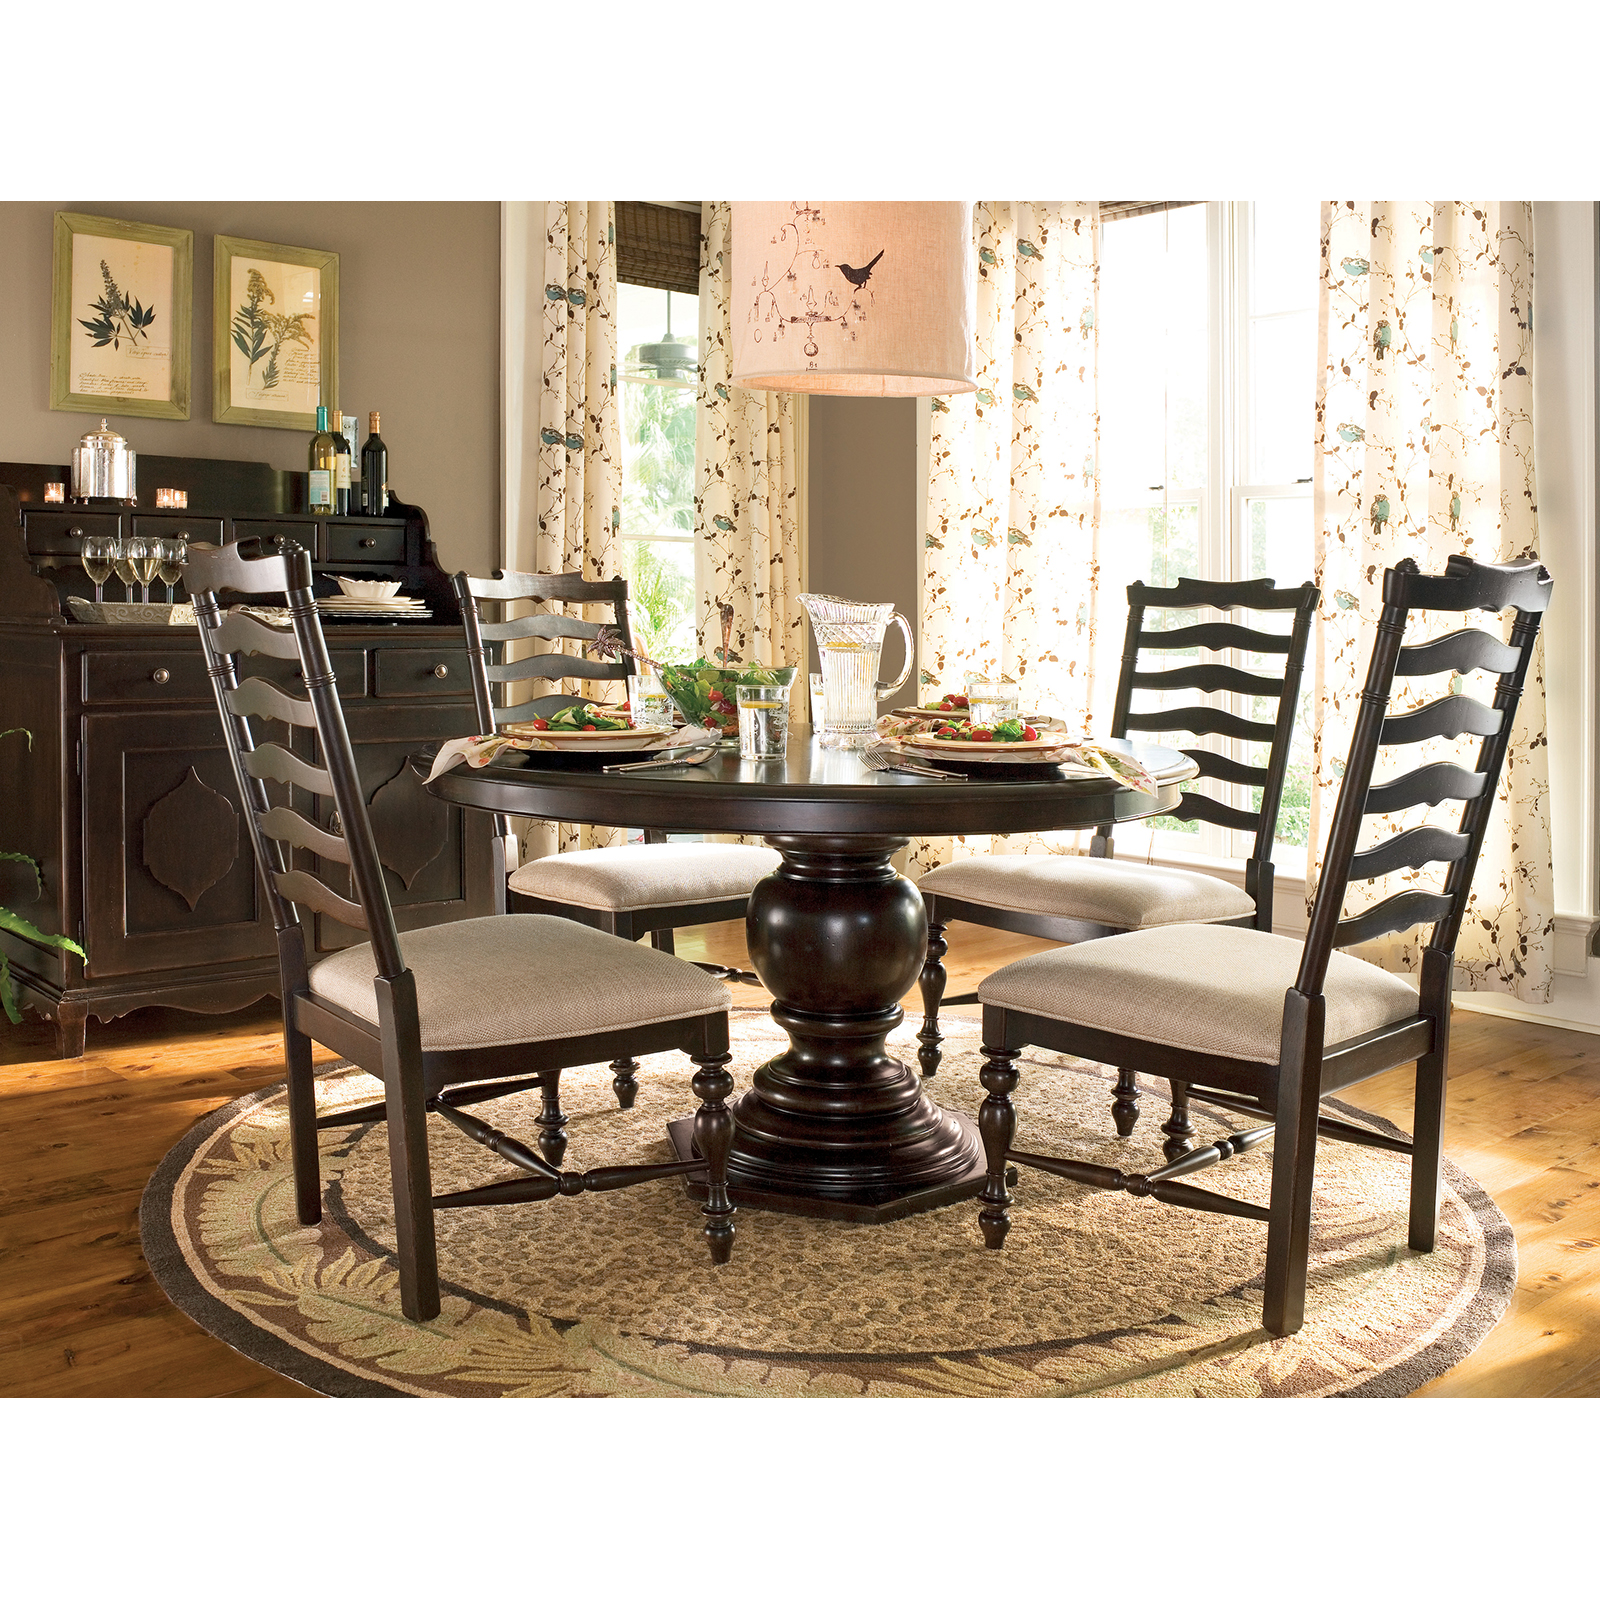 Paula Deen Home 5 Piece Round Pedestal Dining Table Set   Tobacco   With  Mike Chairs